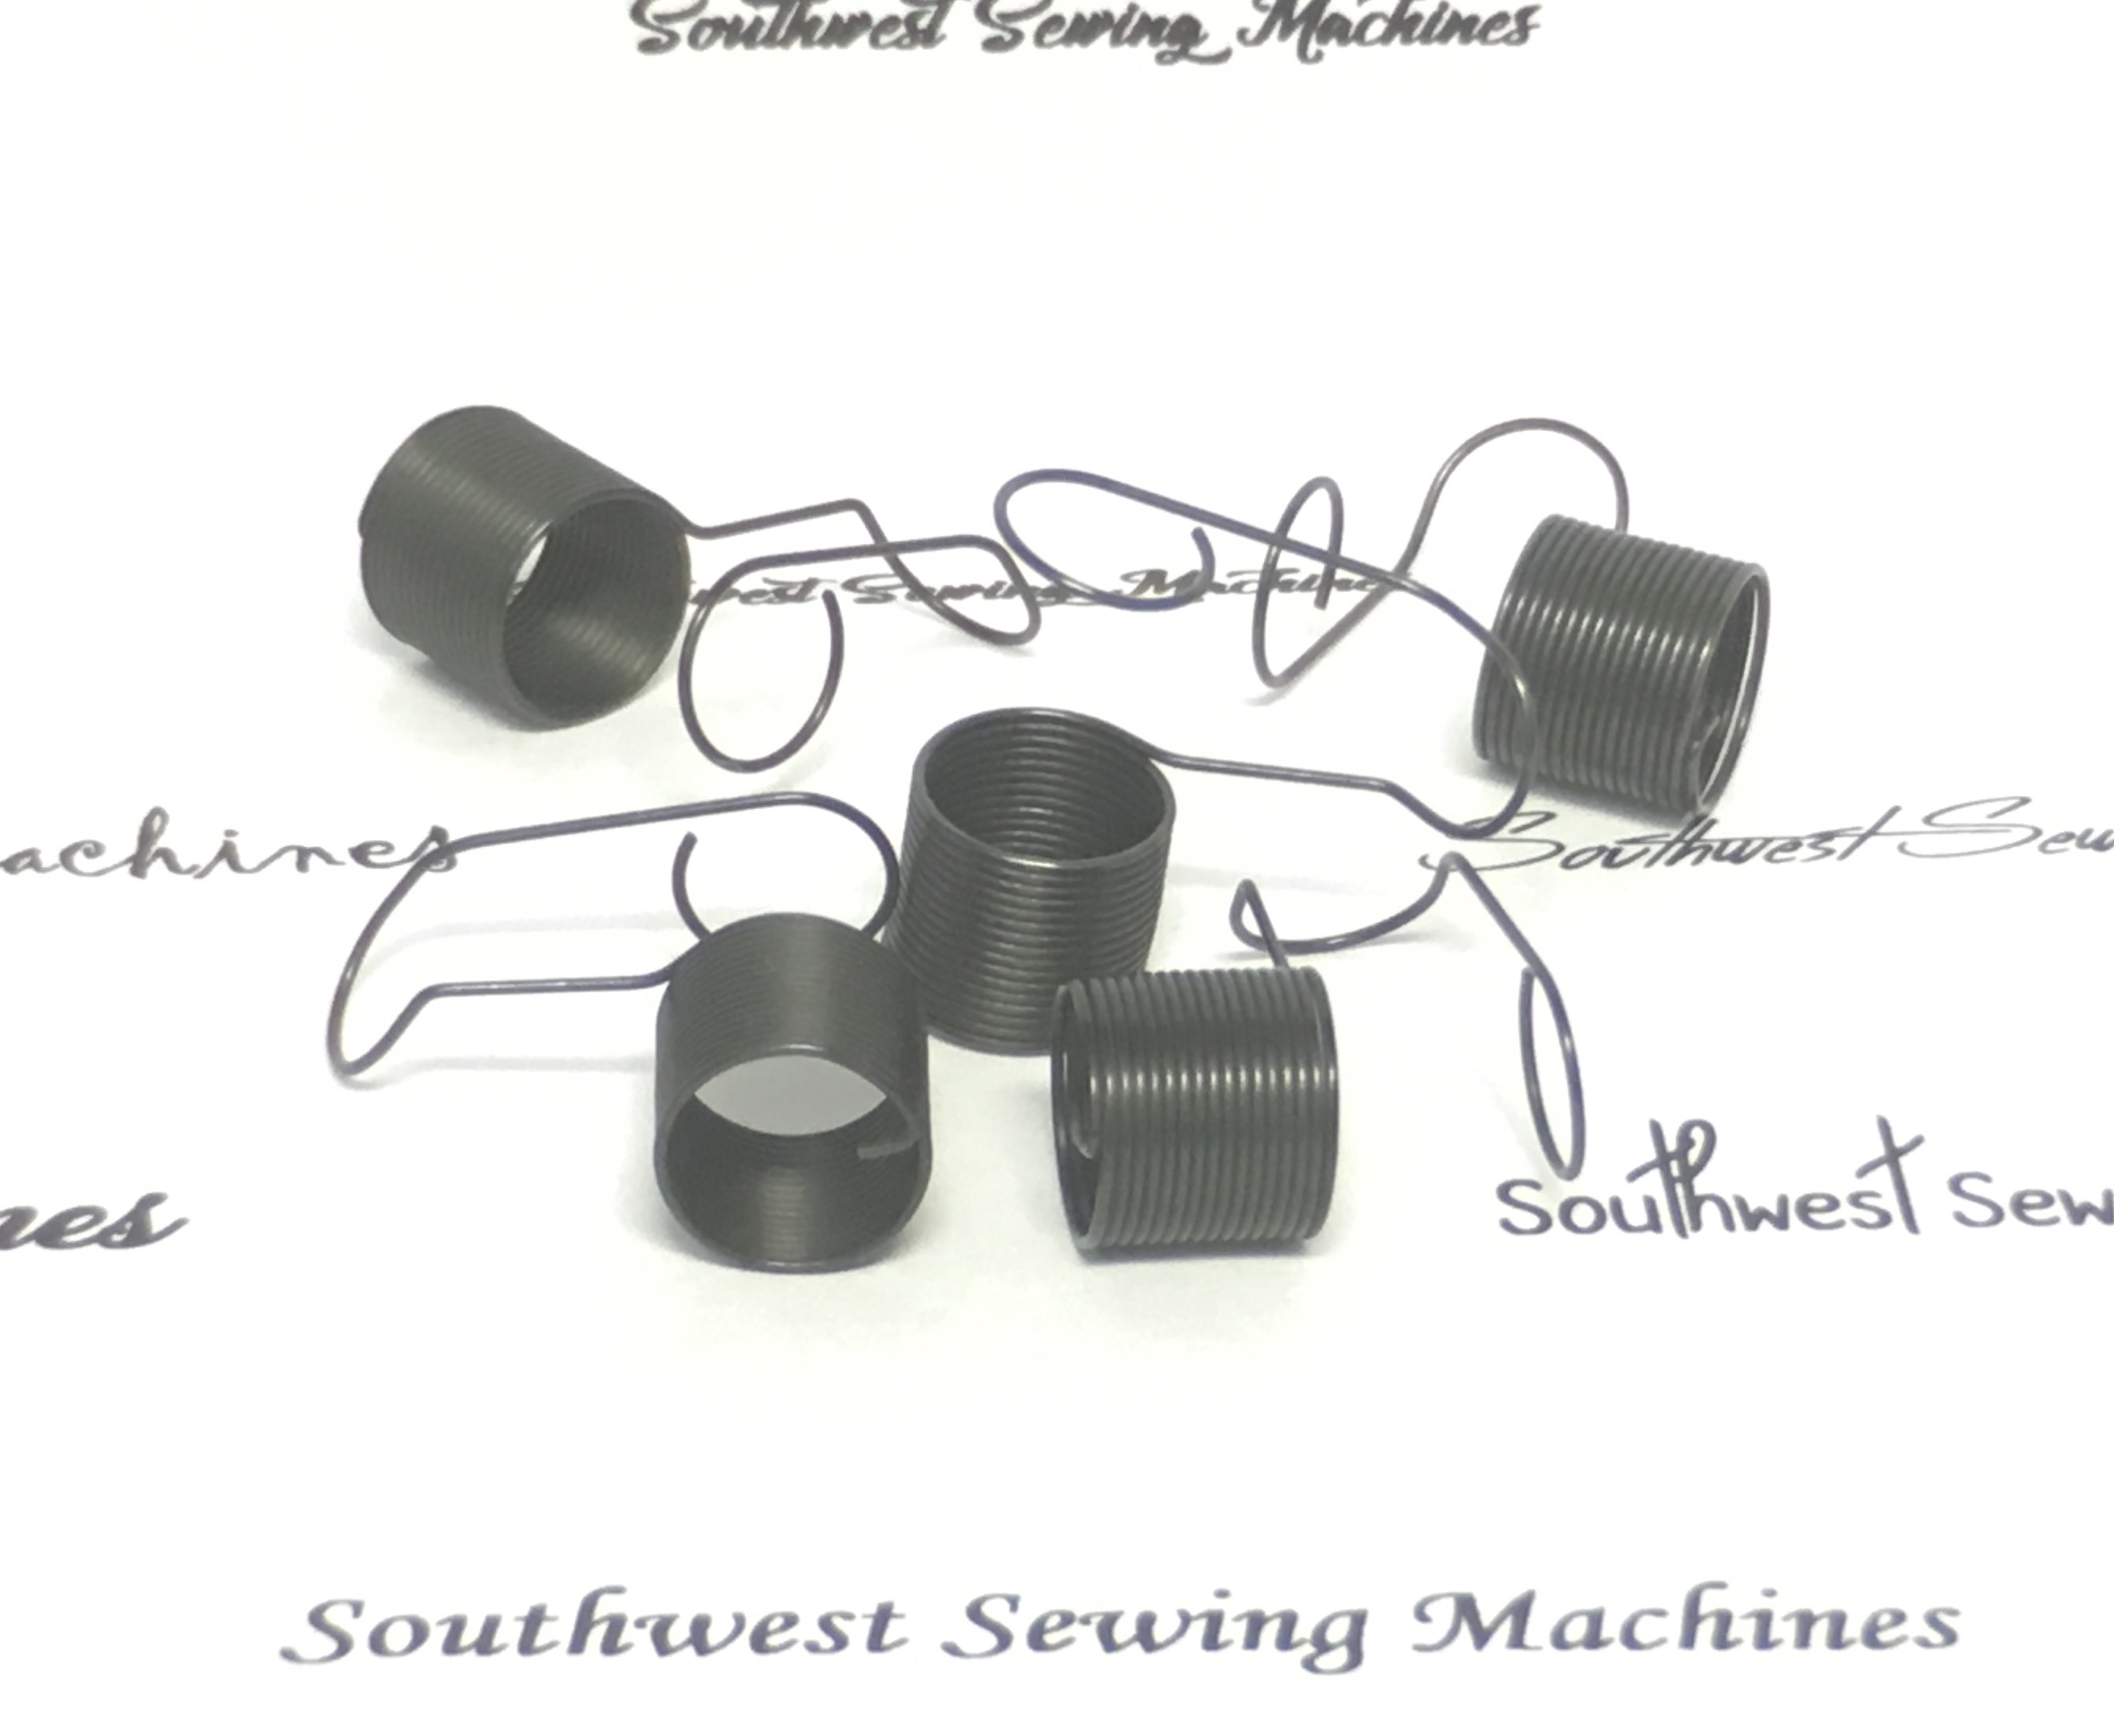 THREAD TAKE-UP SPRING (A) B-3128-051-000